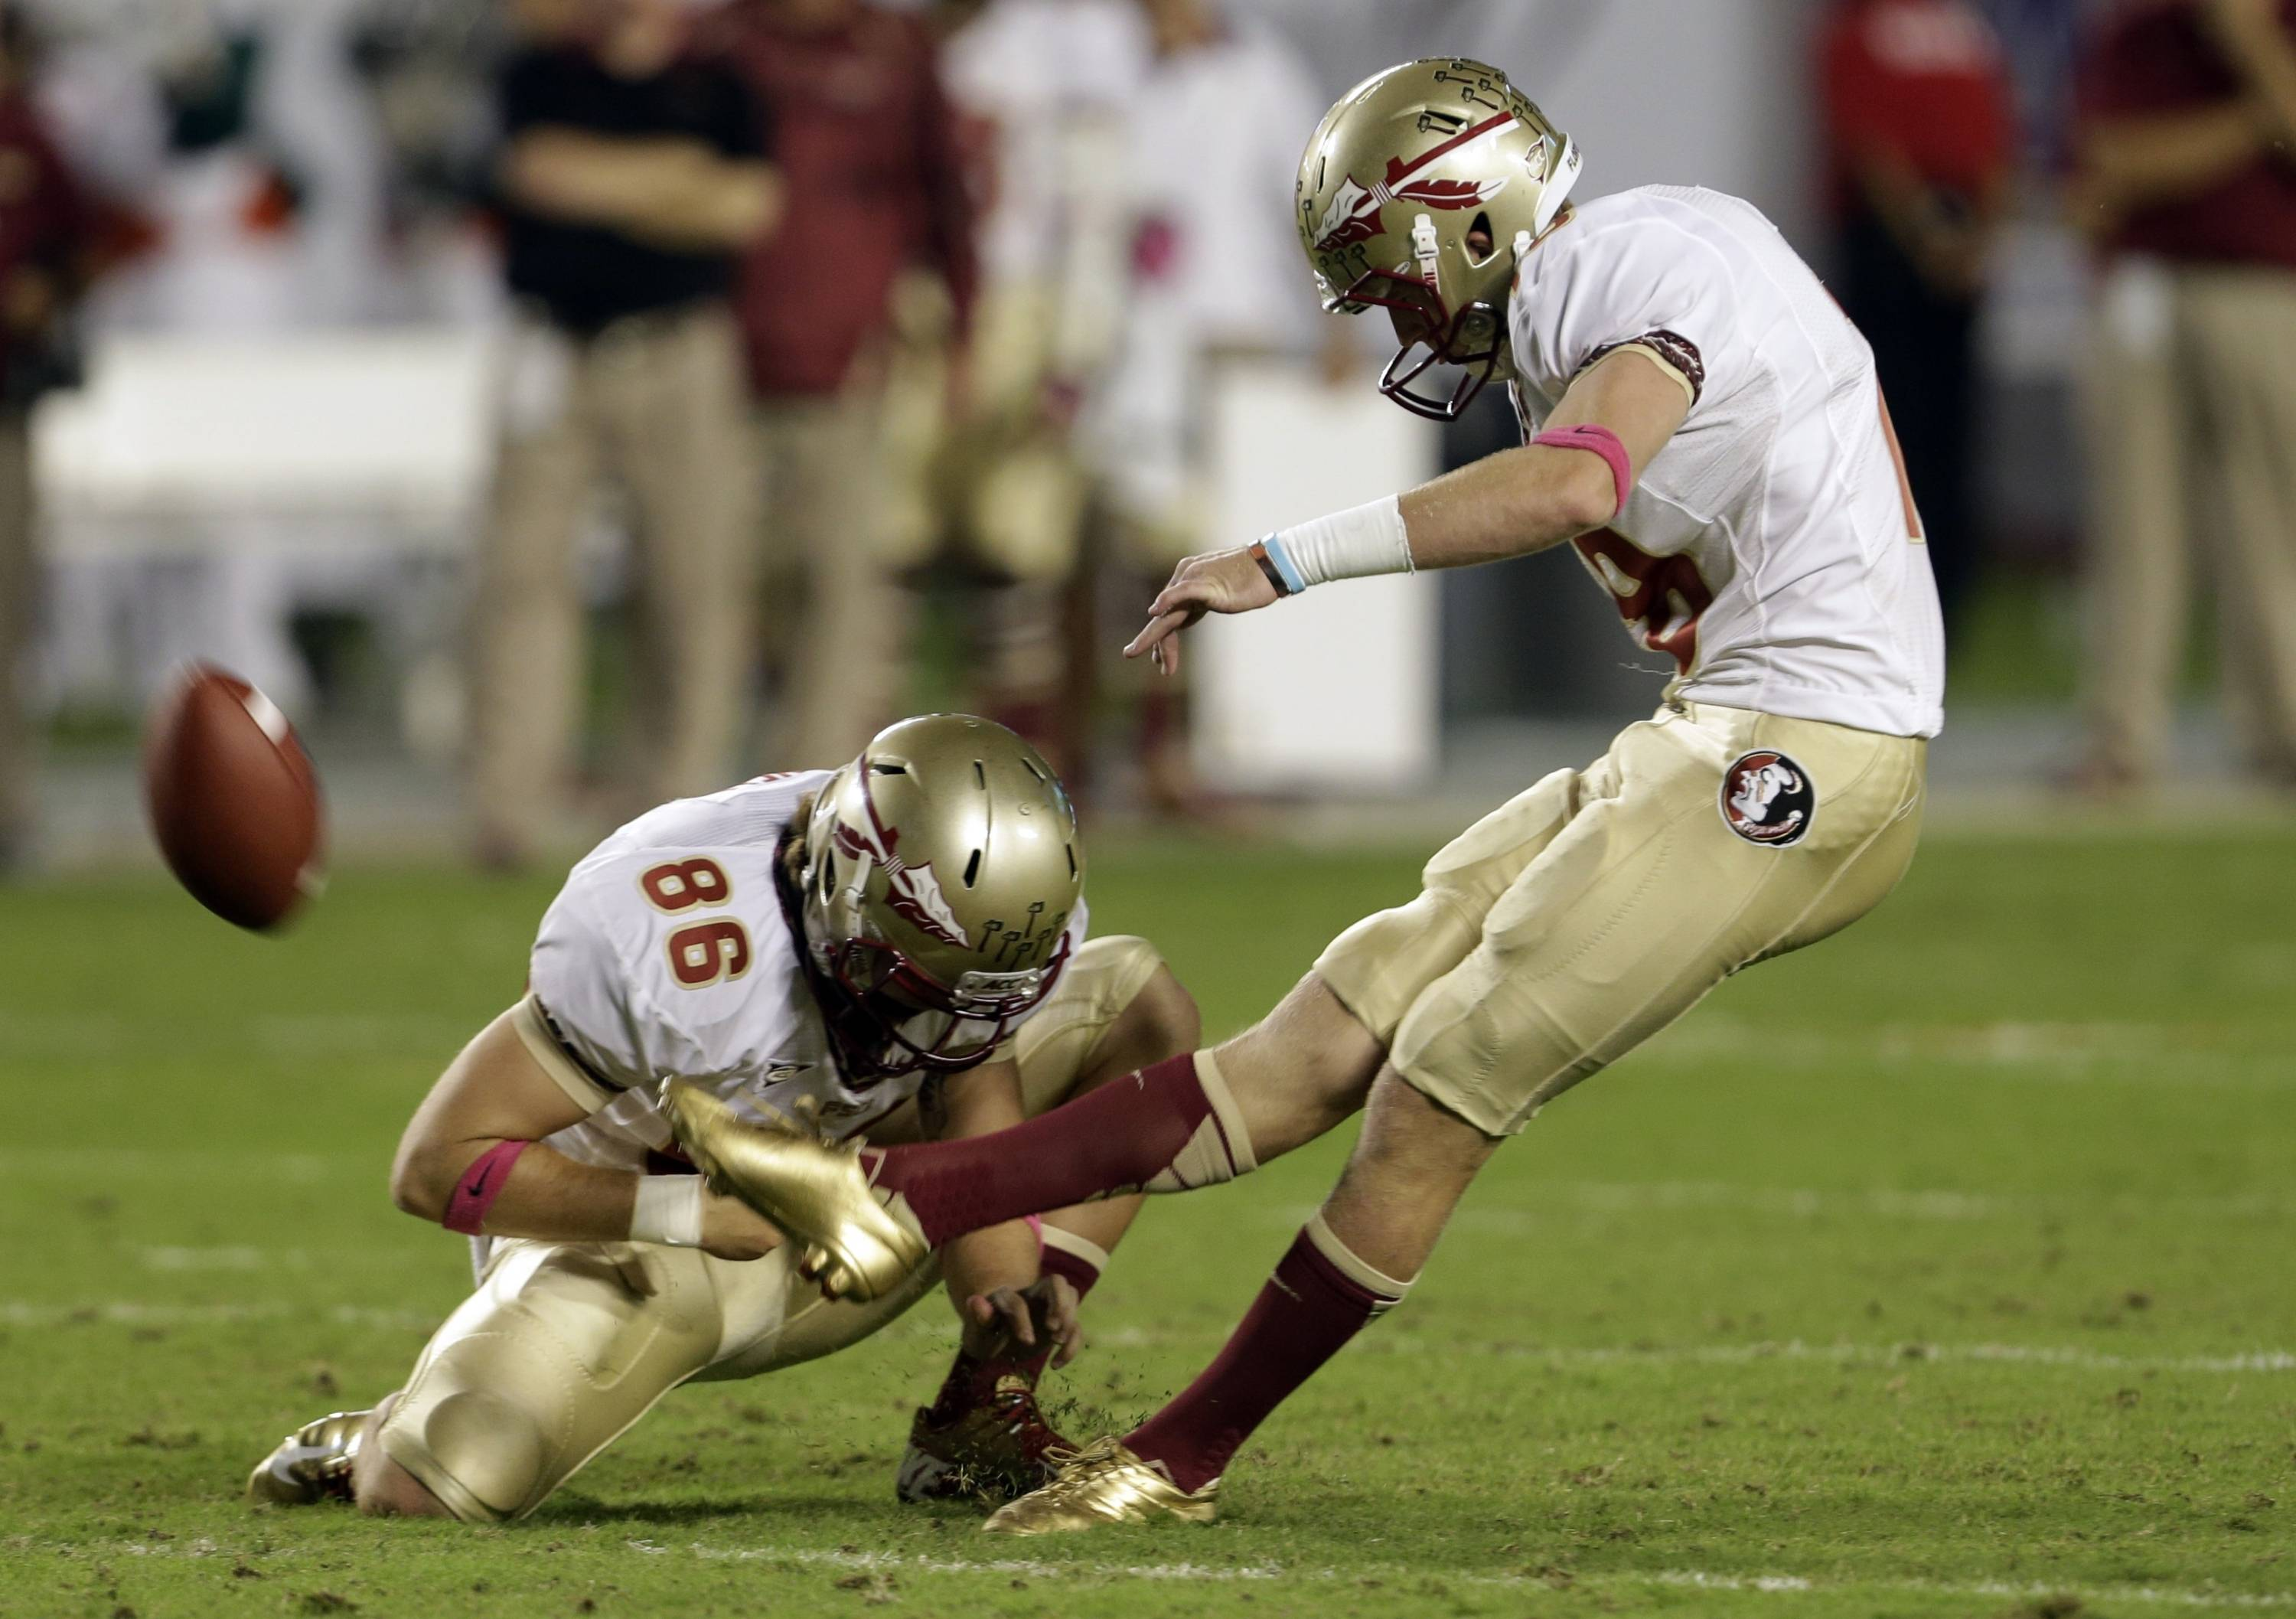 Florida State's Dustin Hopkins, right, kicks a field goal from the hold of Chris Revell (86) during the first half of an NCAA college football game against Miami, Saturday, Oct. 20, 2012, in Miami. (AP Photo/Lynne Sladky)